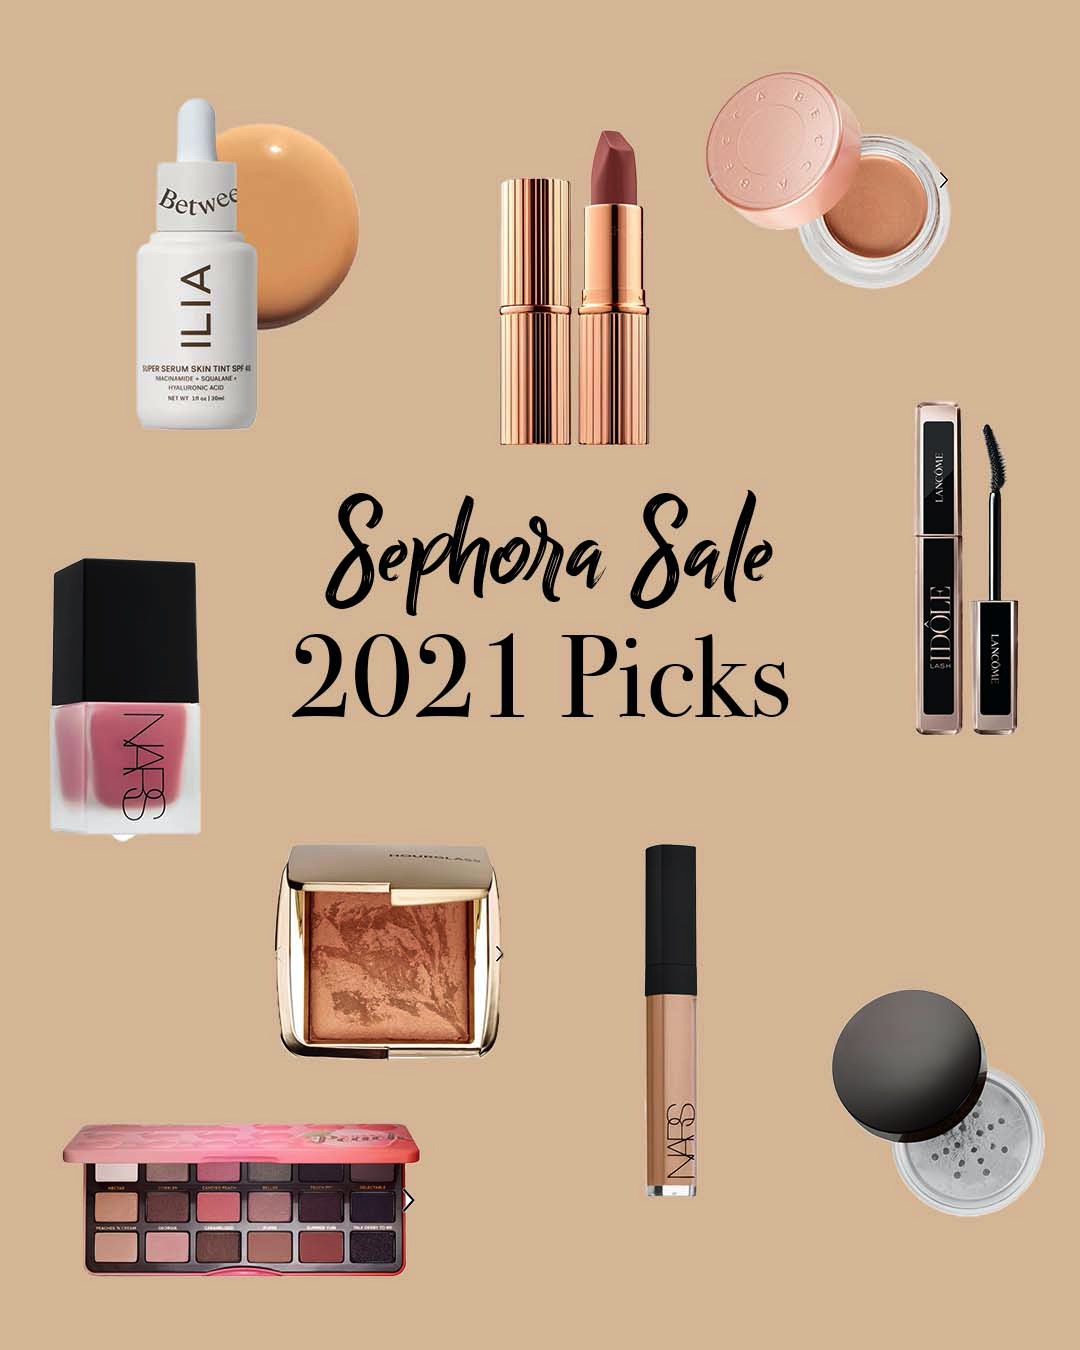 Nita mann shares her picks from the sephora sale